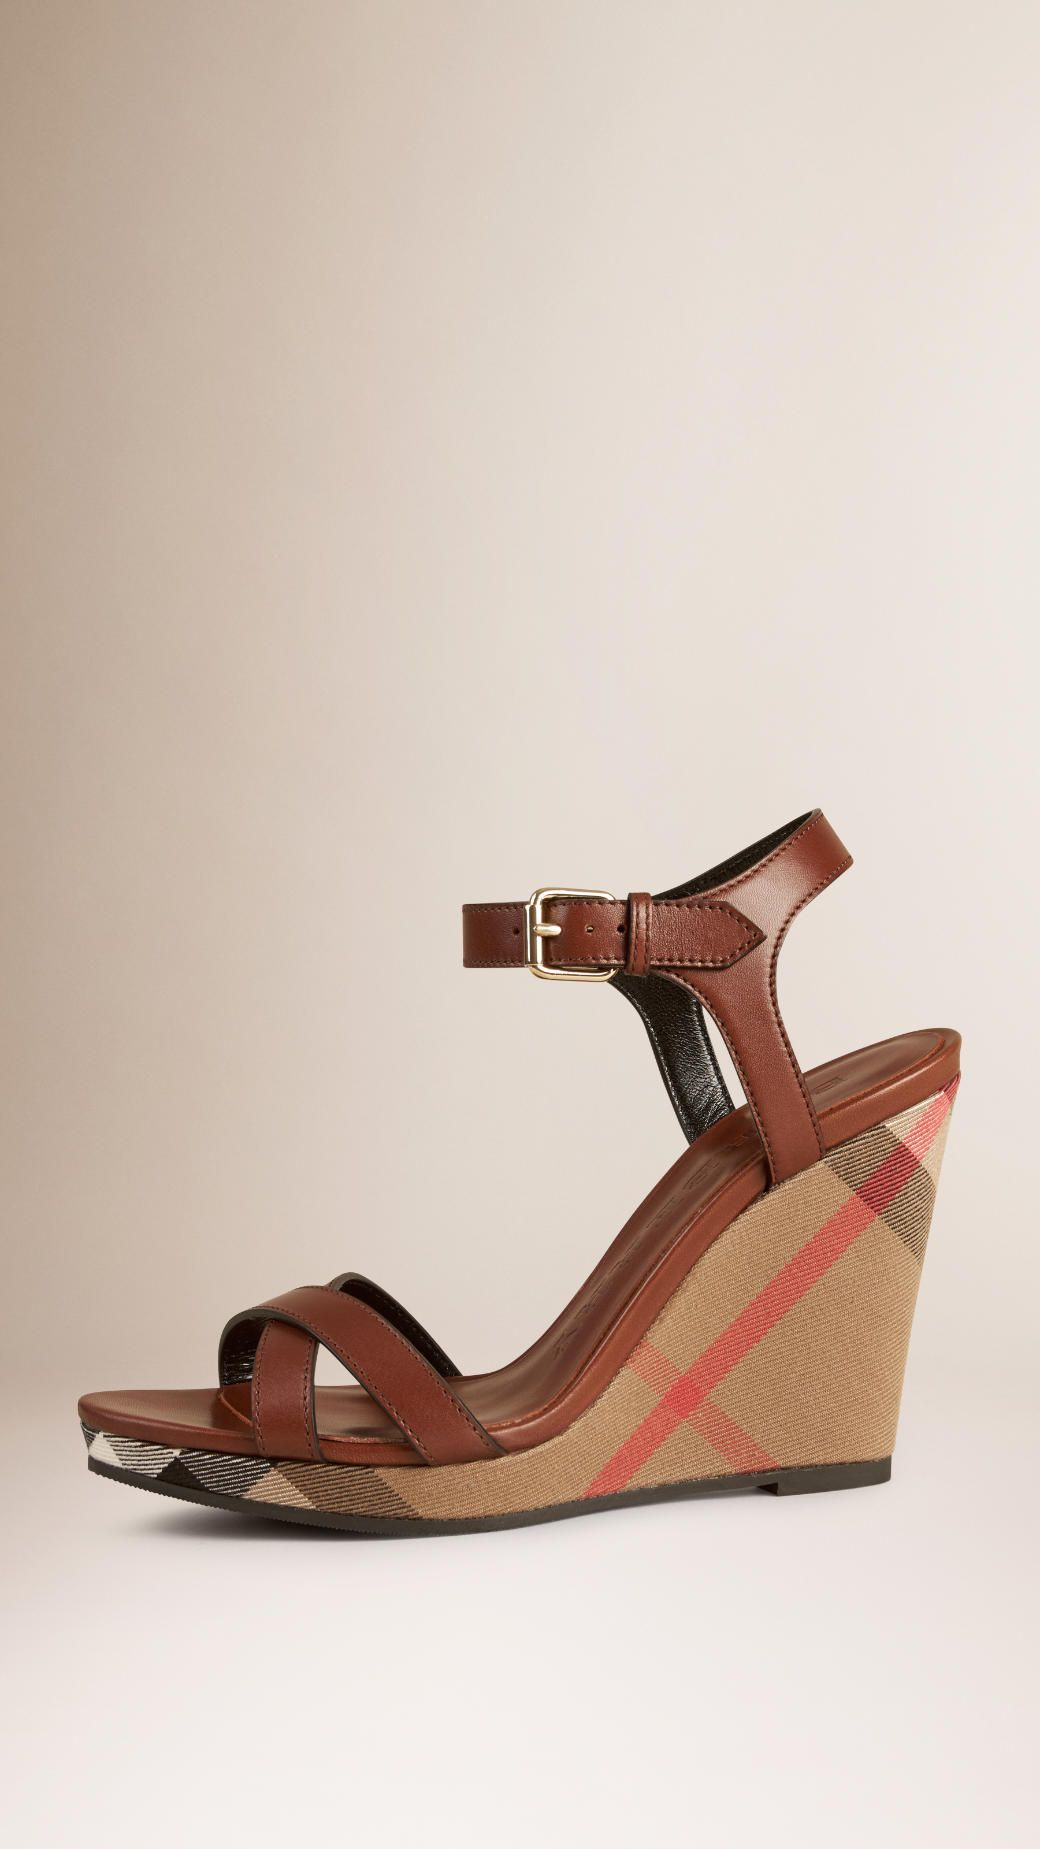 ac198b5cef1 Shoes for Women | Burberry | SHOES | Shoes, Wedges, Burberry